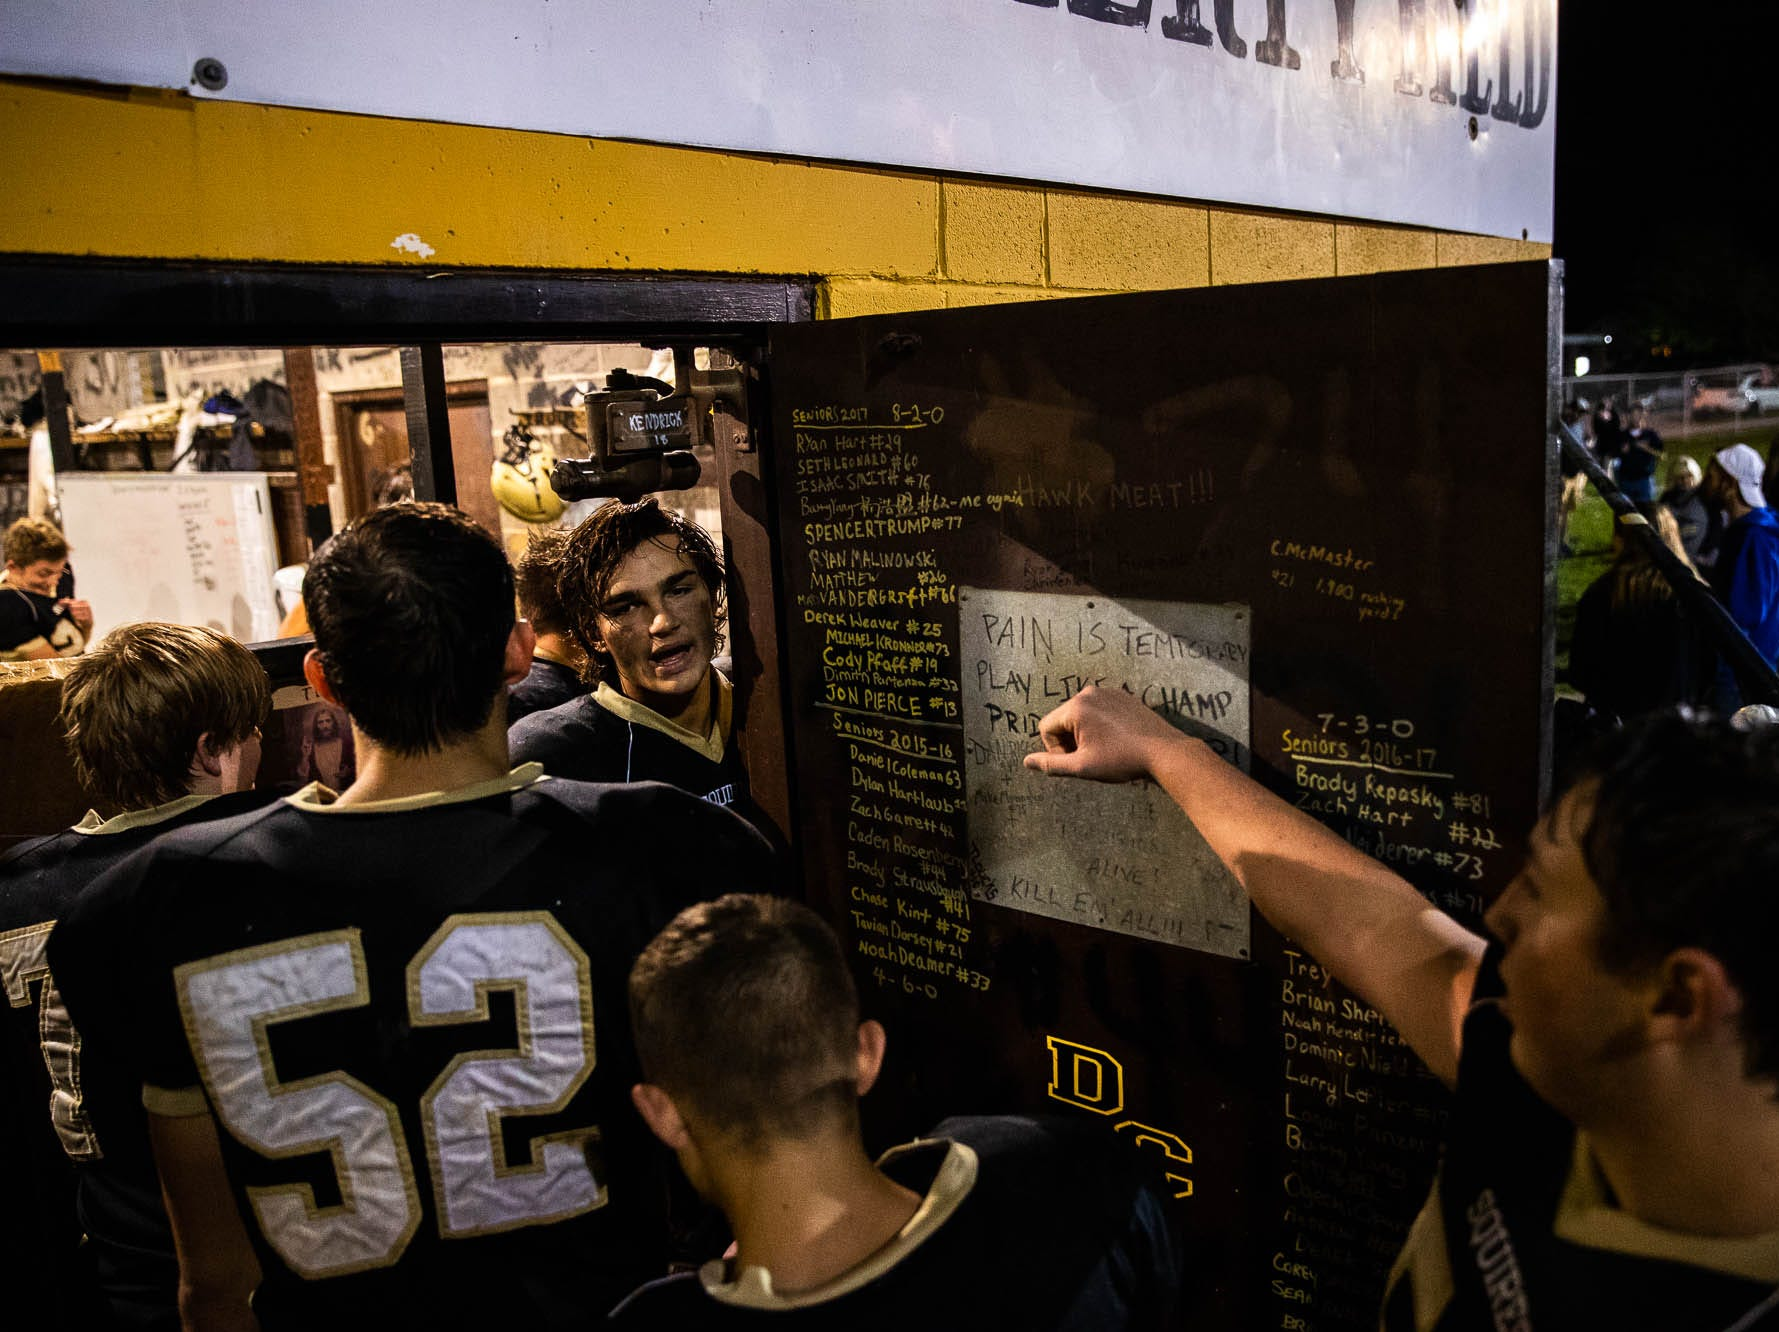 Delone Catholic players bang on the lockerroom door after winning a game against Biglerville, Friday, Sept. 28, 2018, in McSherrystown. The Delone Catholic Squires defeated the Biglerville Canners 56-0.